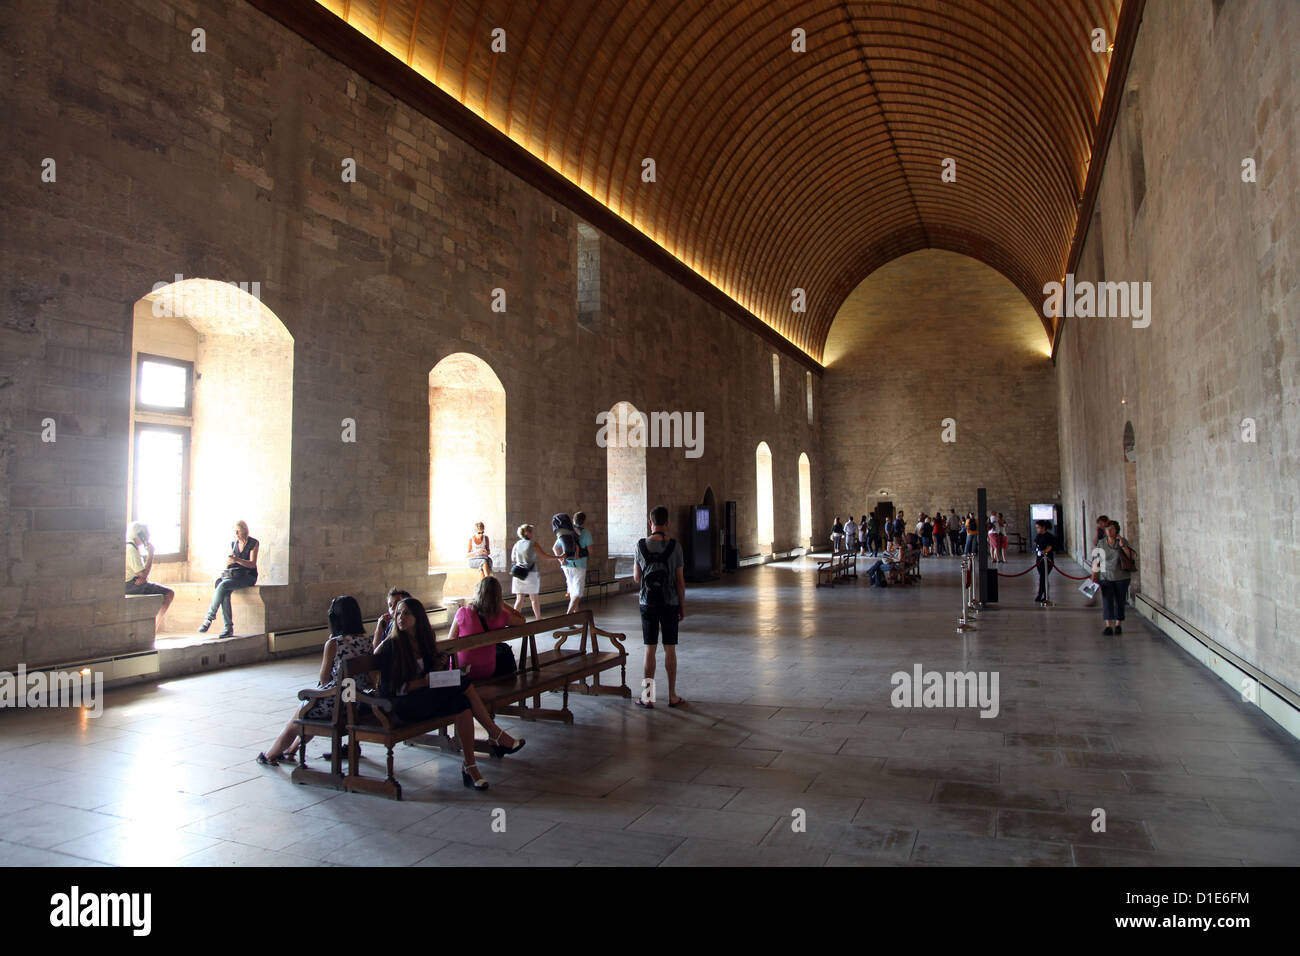 Main hall, Palais des Papes, UNESCO World Heritage Site, Avignon, Vaucluse, Provence, France, Europe - Stock Image